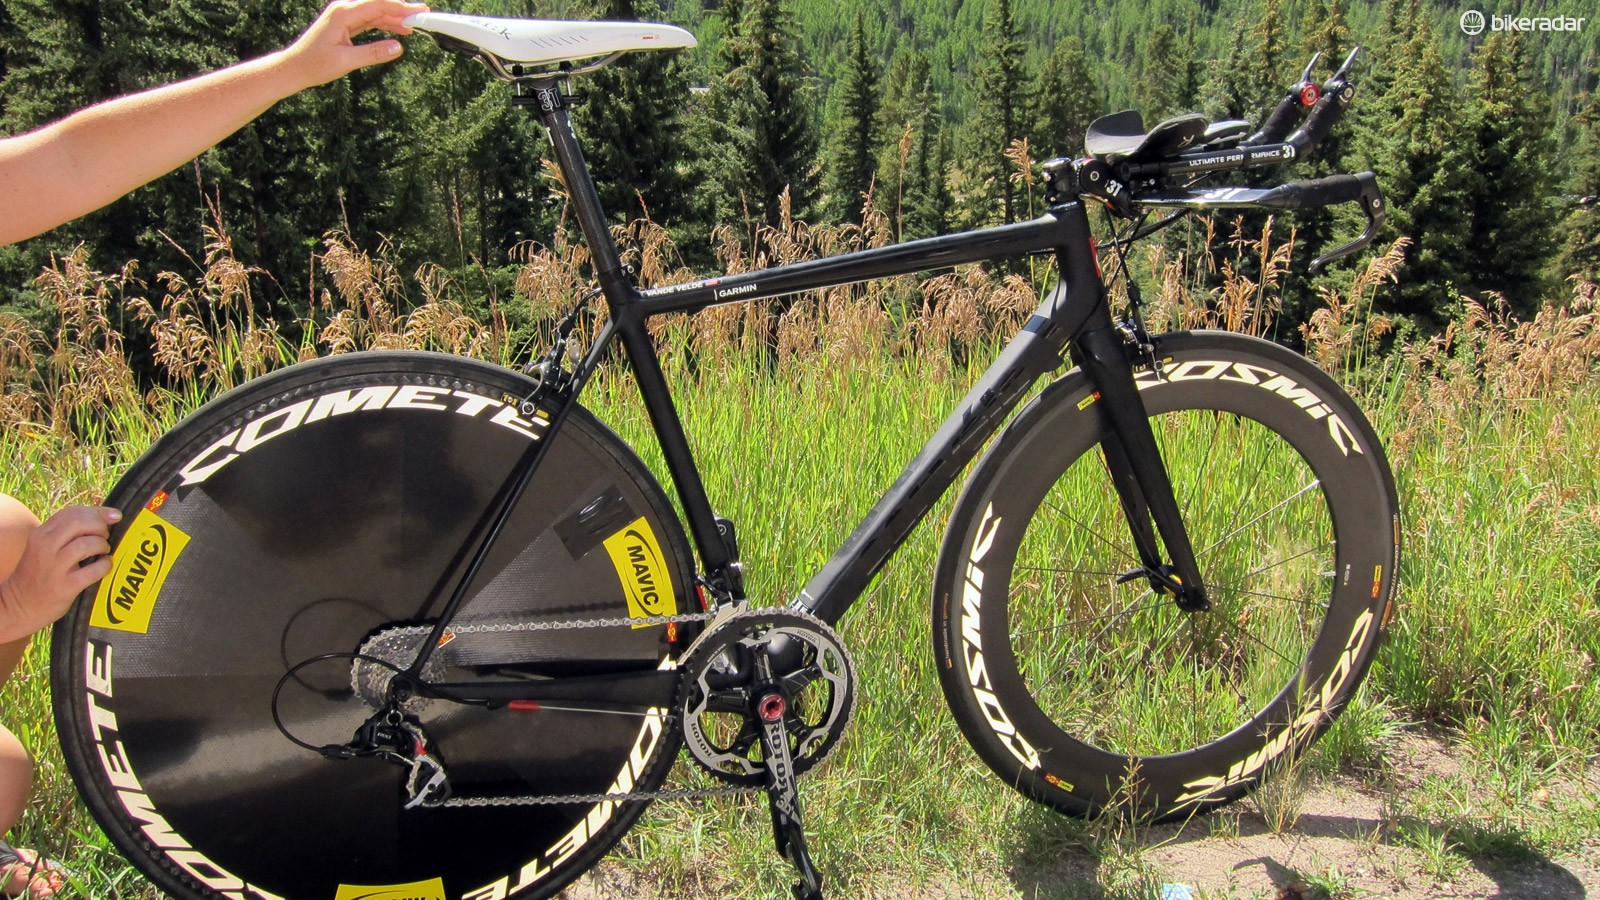 While some may view the UCI's minimum 6.8kg weight rule as antiquated, one could easily argue that it's prompted teams and mechanics to be more creative in how that weight is 'spent'. The 2011 USA Pro Cycling Challenge time trial, for example, featured a long and flat portion followed by a climb up Vail Pass. Garmin's solution that day was to pair the ultralight Cervélo R5ca frame with a full complement of aero componentry for a final product that was very slippery but still supposedly weighed less than 7kg